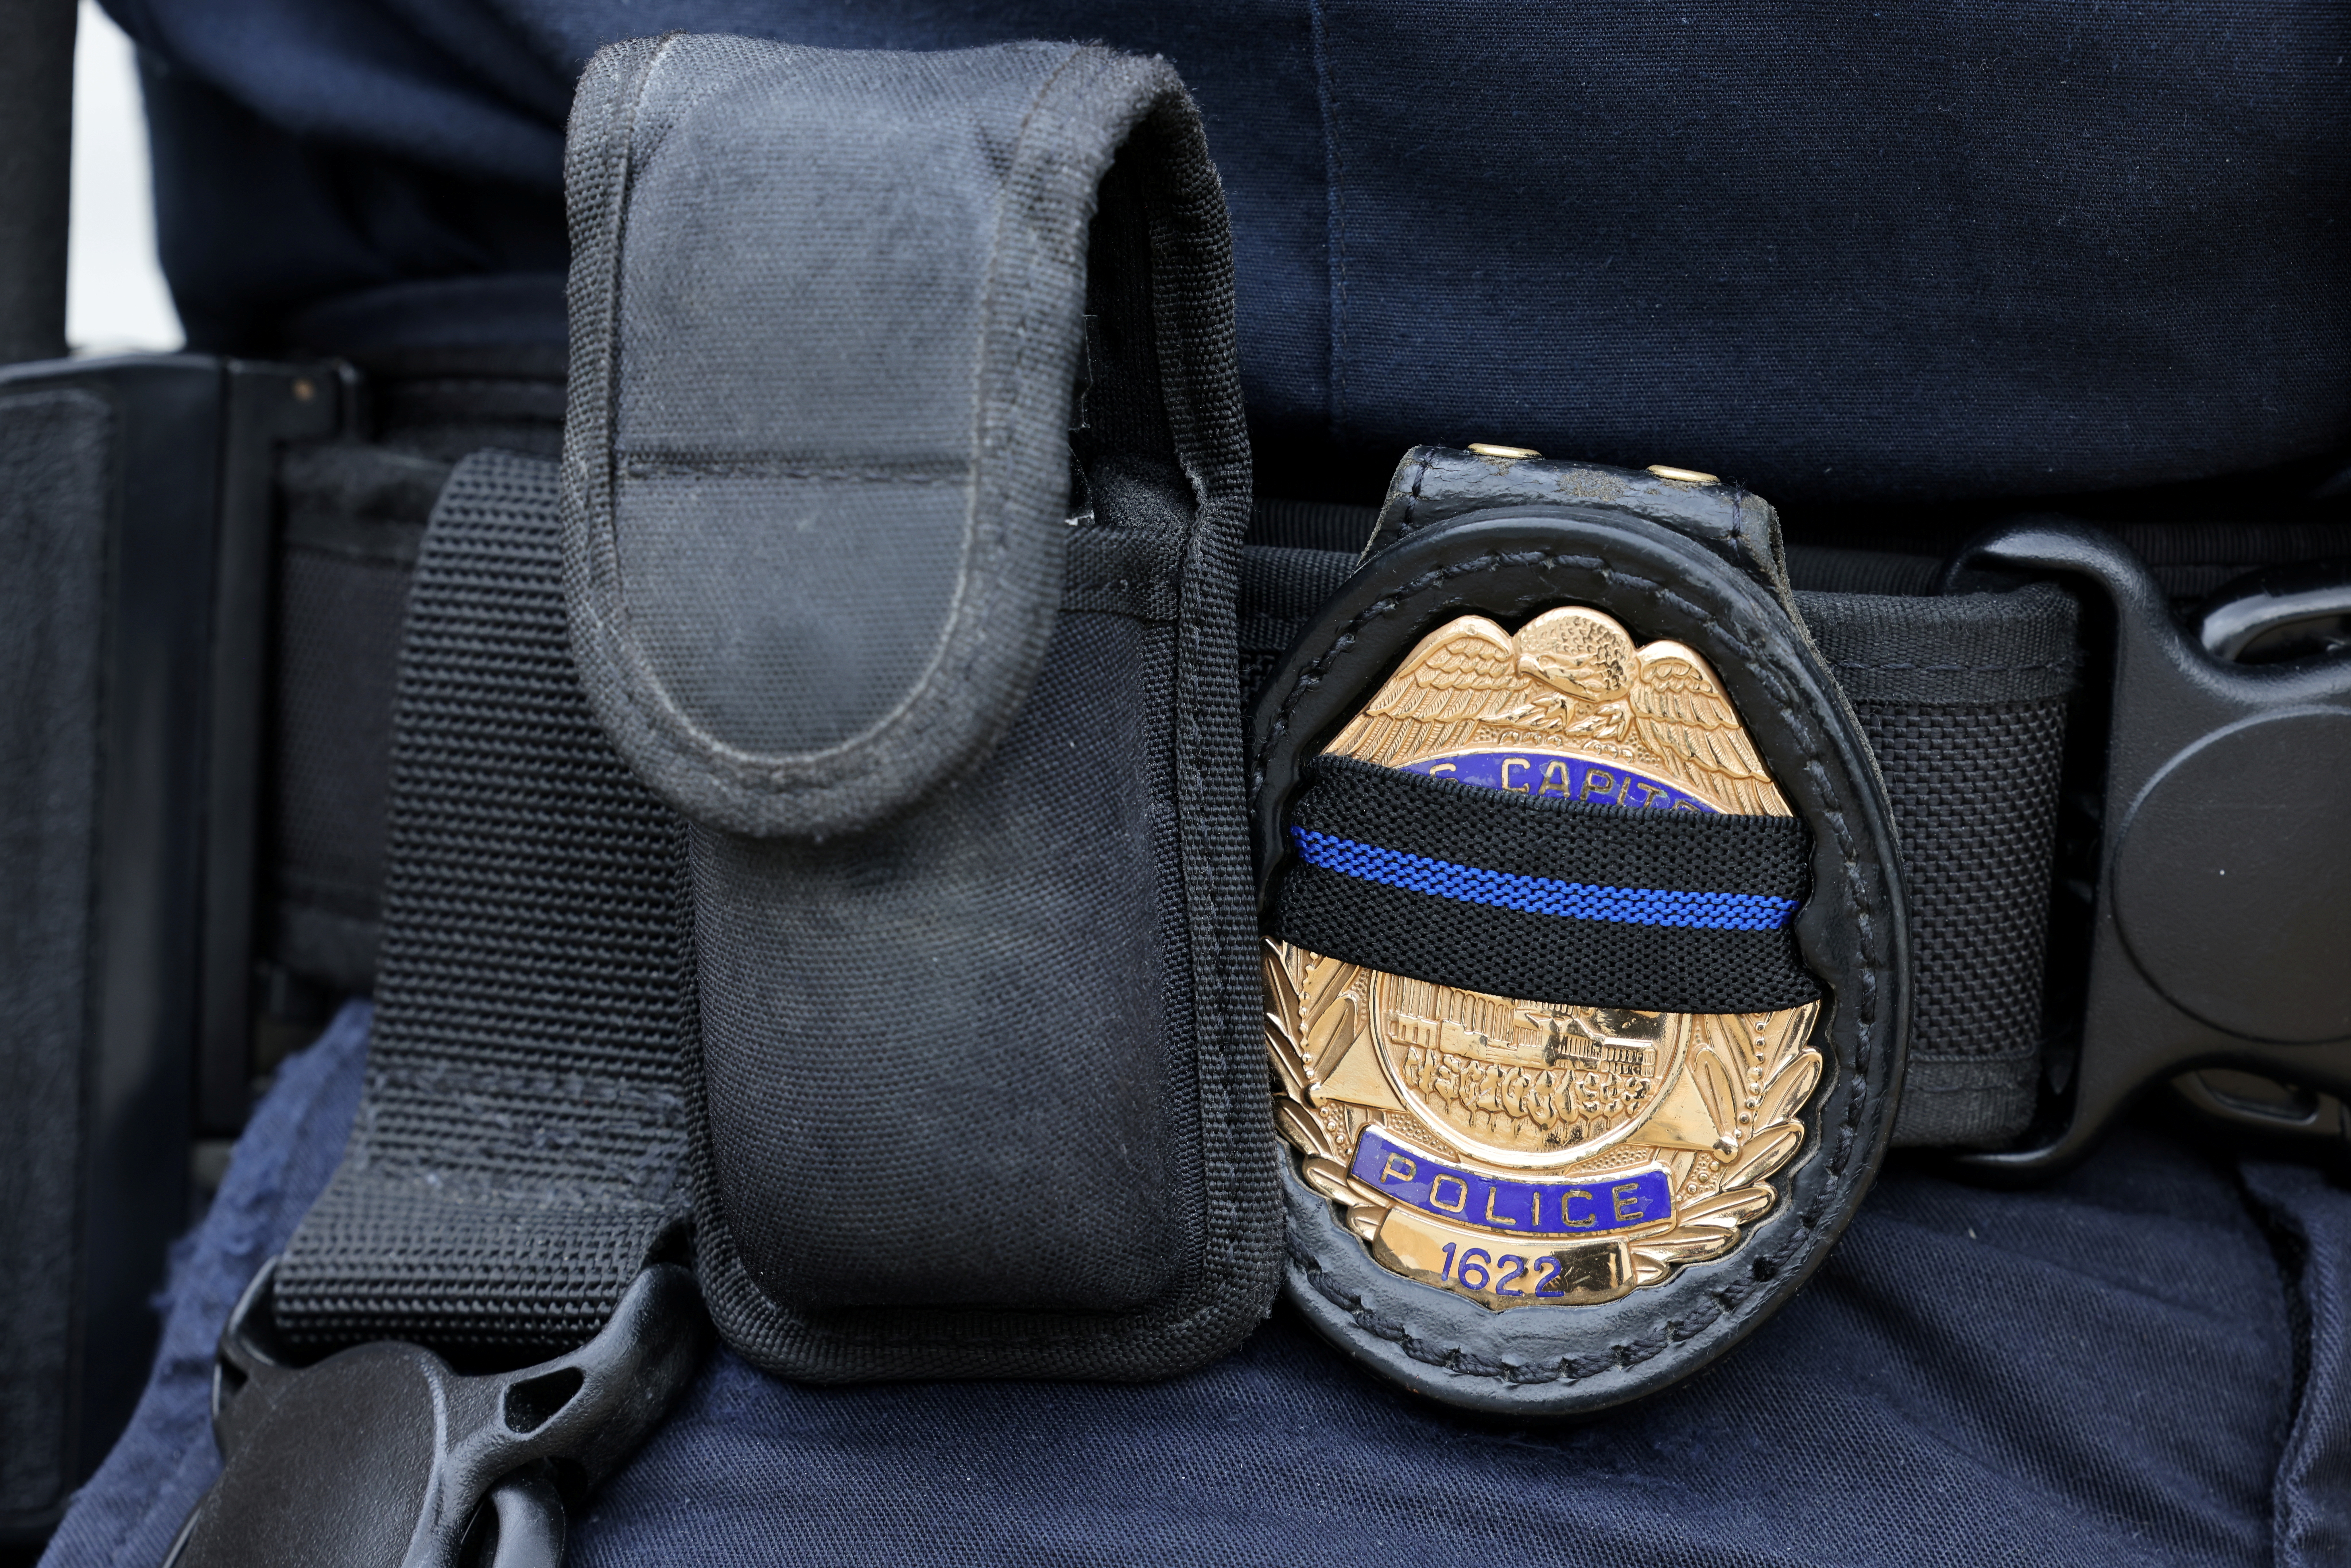 A U.S. Capitol police officer's badge shows a black stripe in honor of deceased colleagues as he guards the building on Capitol Hill in Washington, May 28, 2021.  REUTERS/Evelyn Hockstein/File Photo